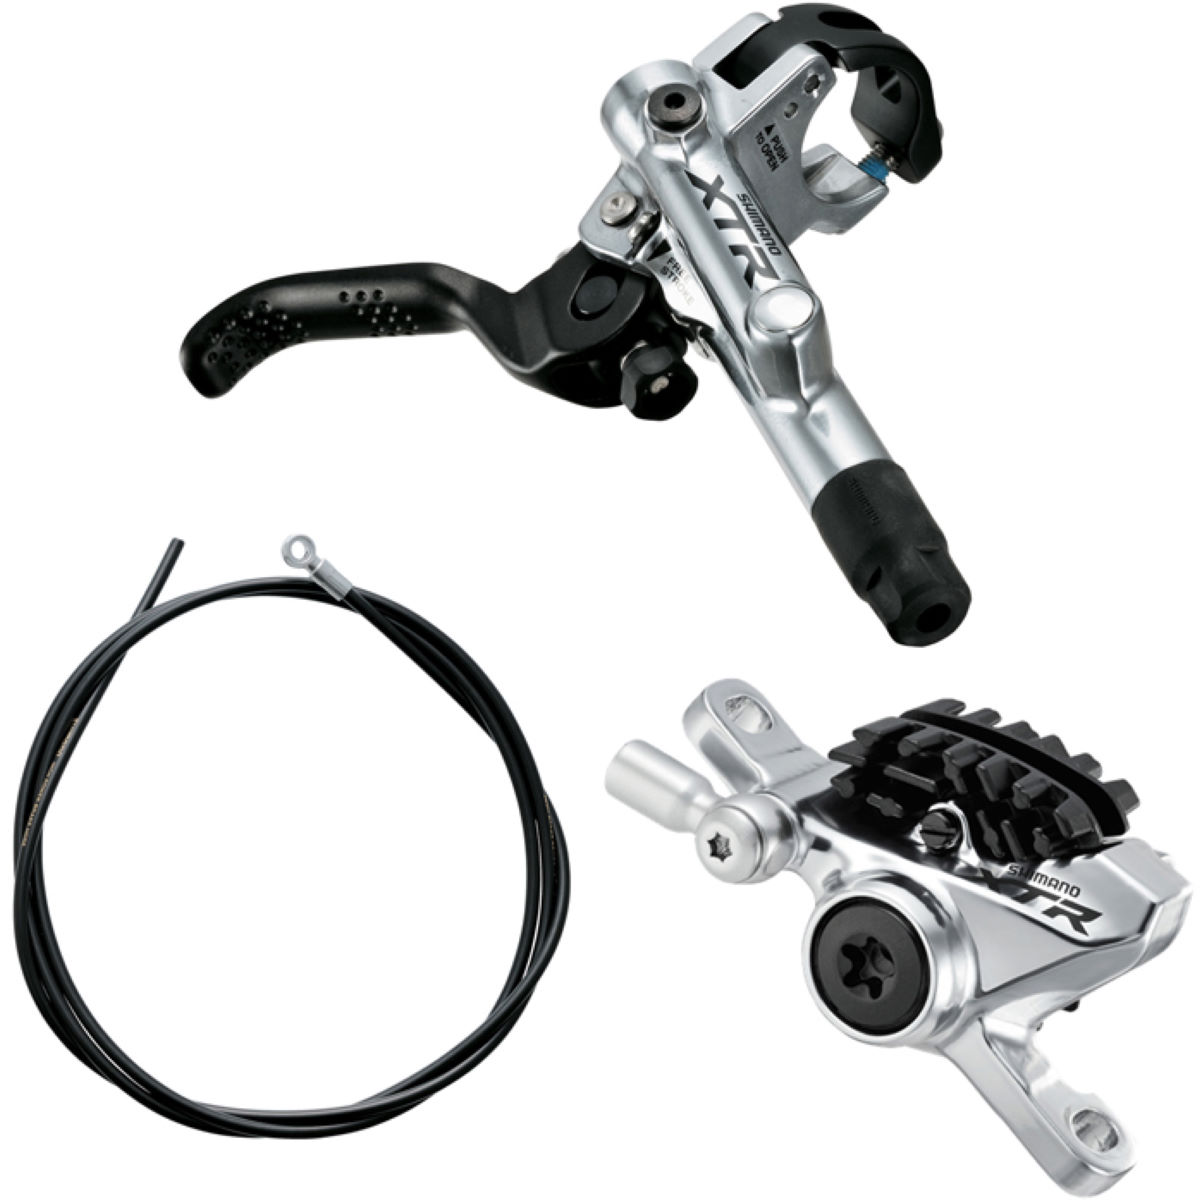 Shimano XTR M988 Trail Disc Brake Lever and PM Caliper